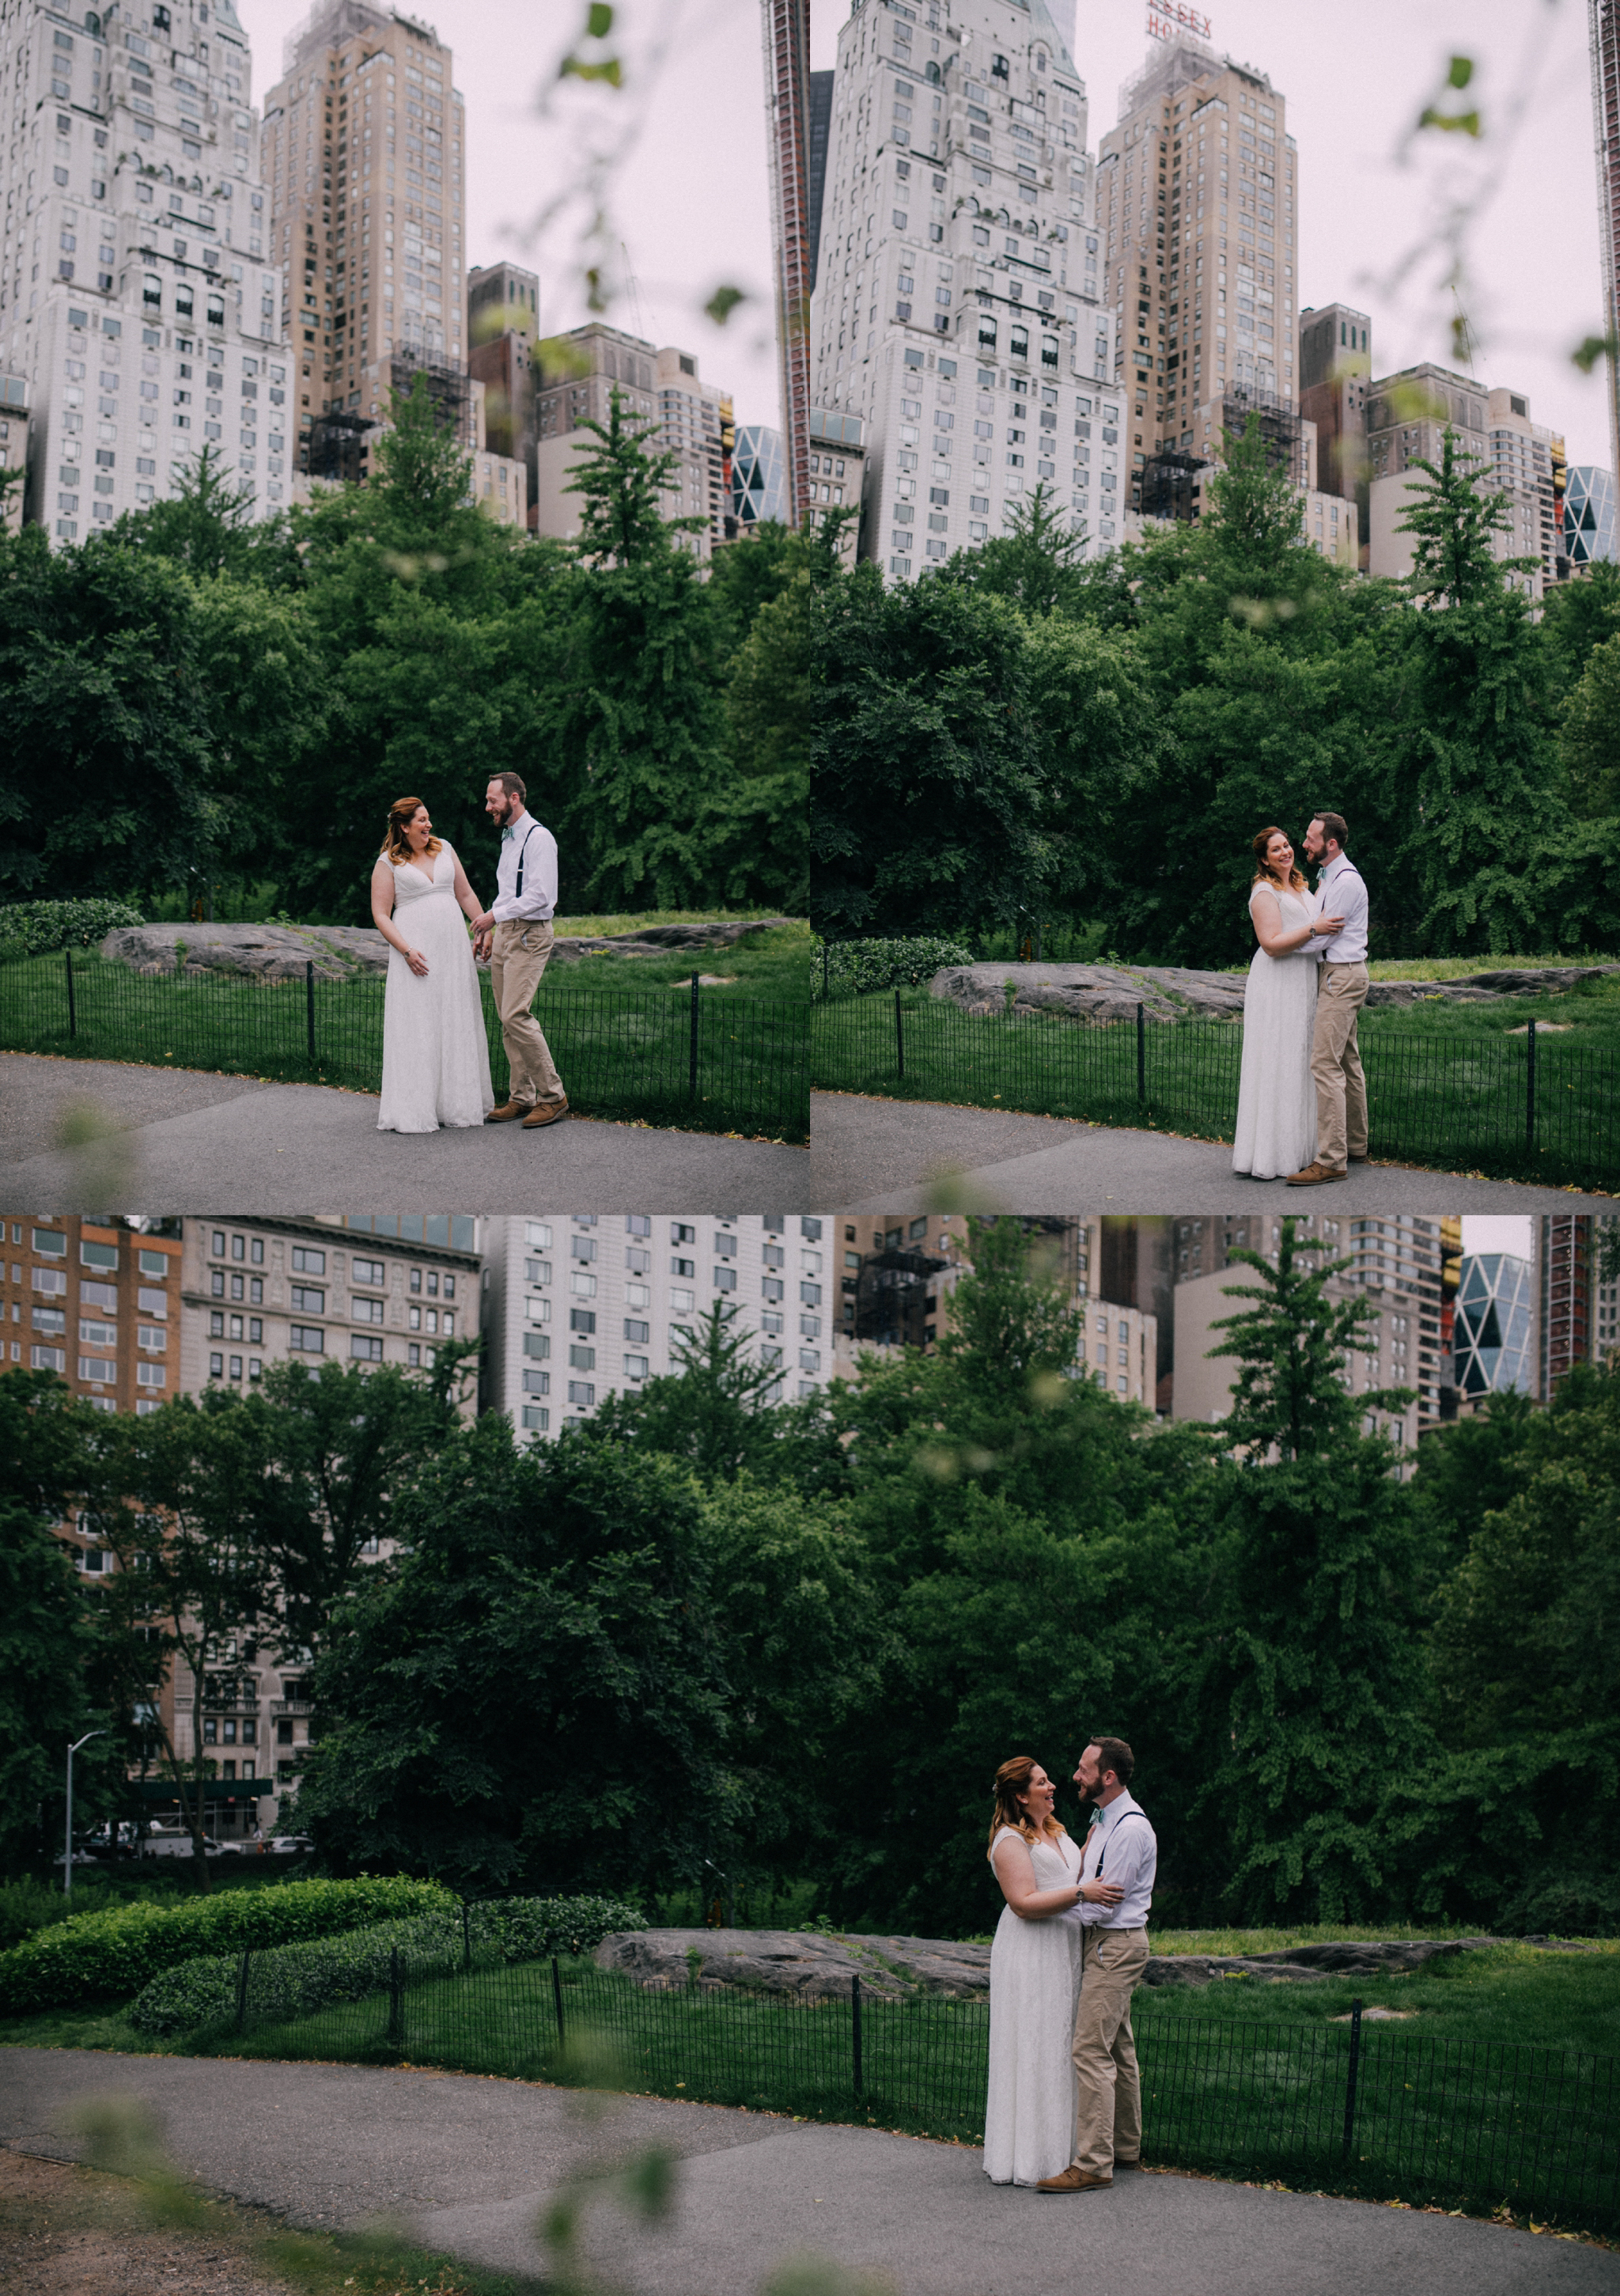 new york city elopement central park courthouse wedding photographer-20.jpg